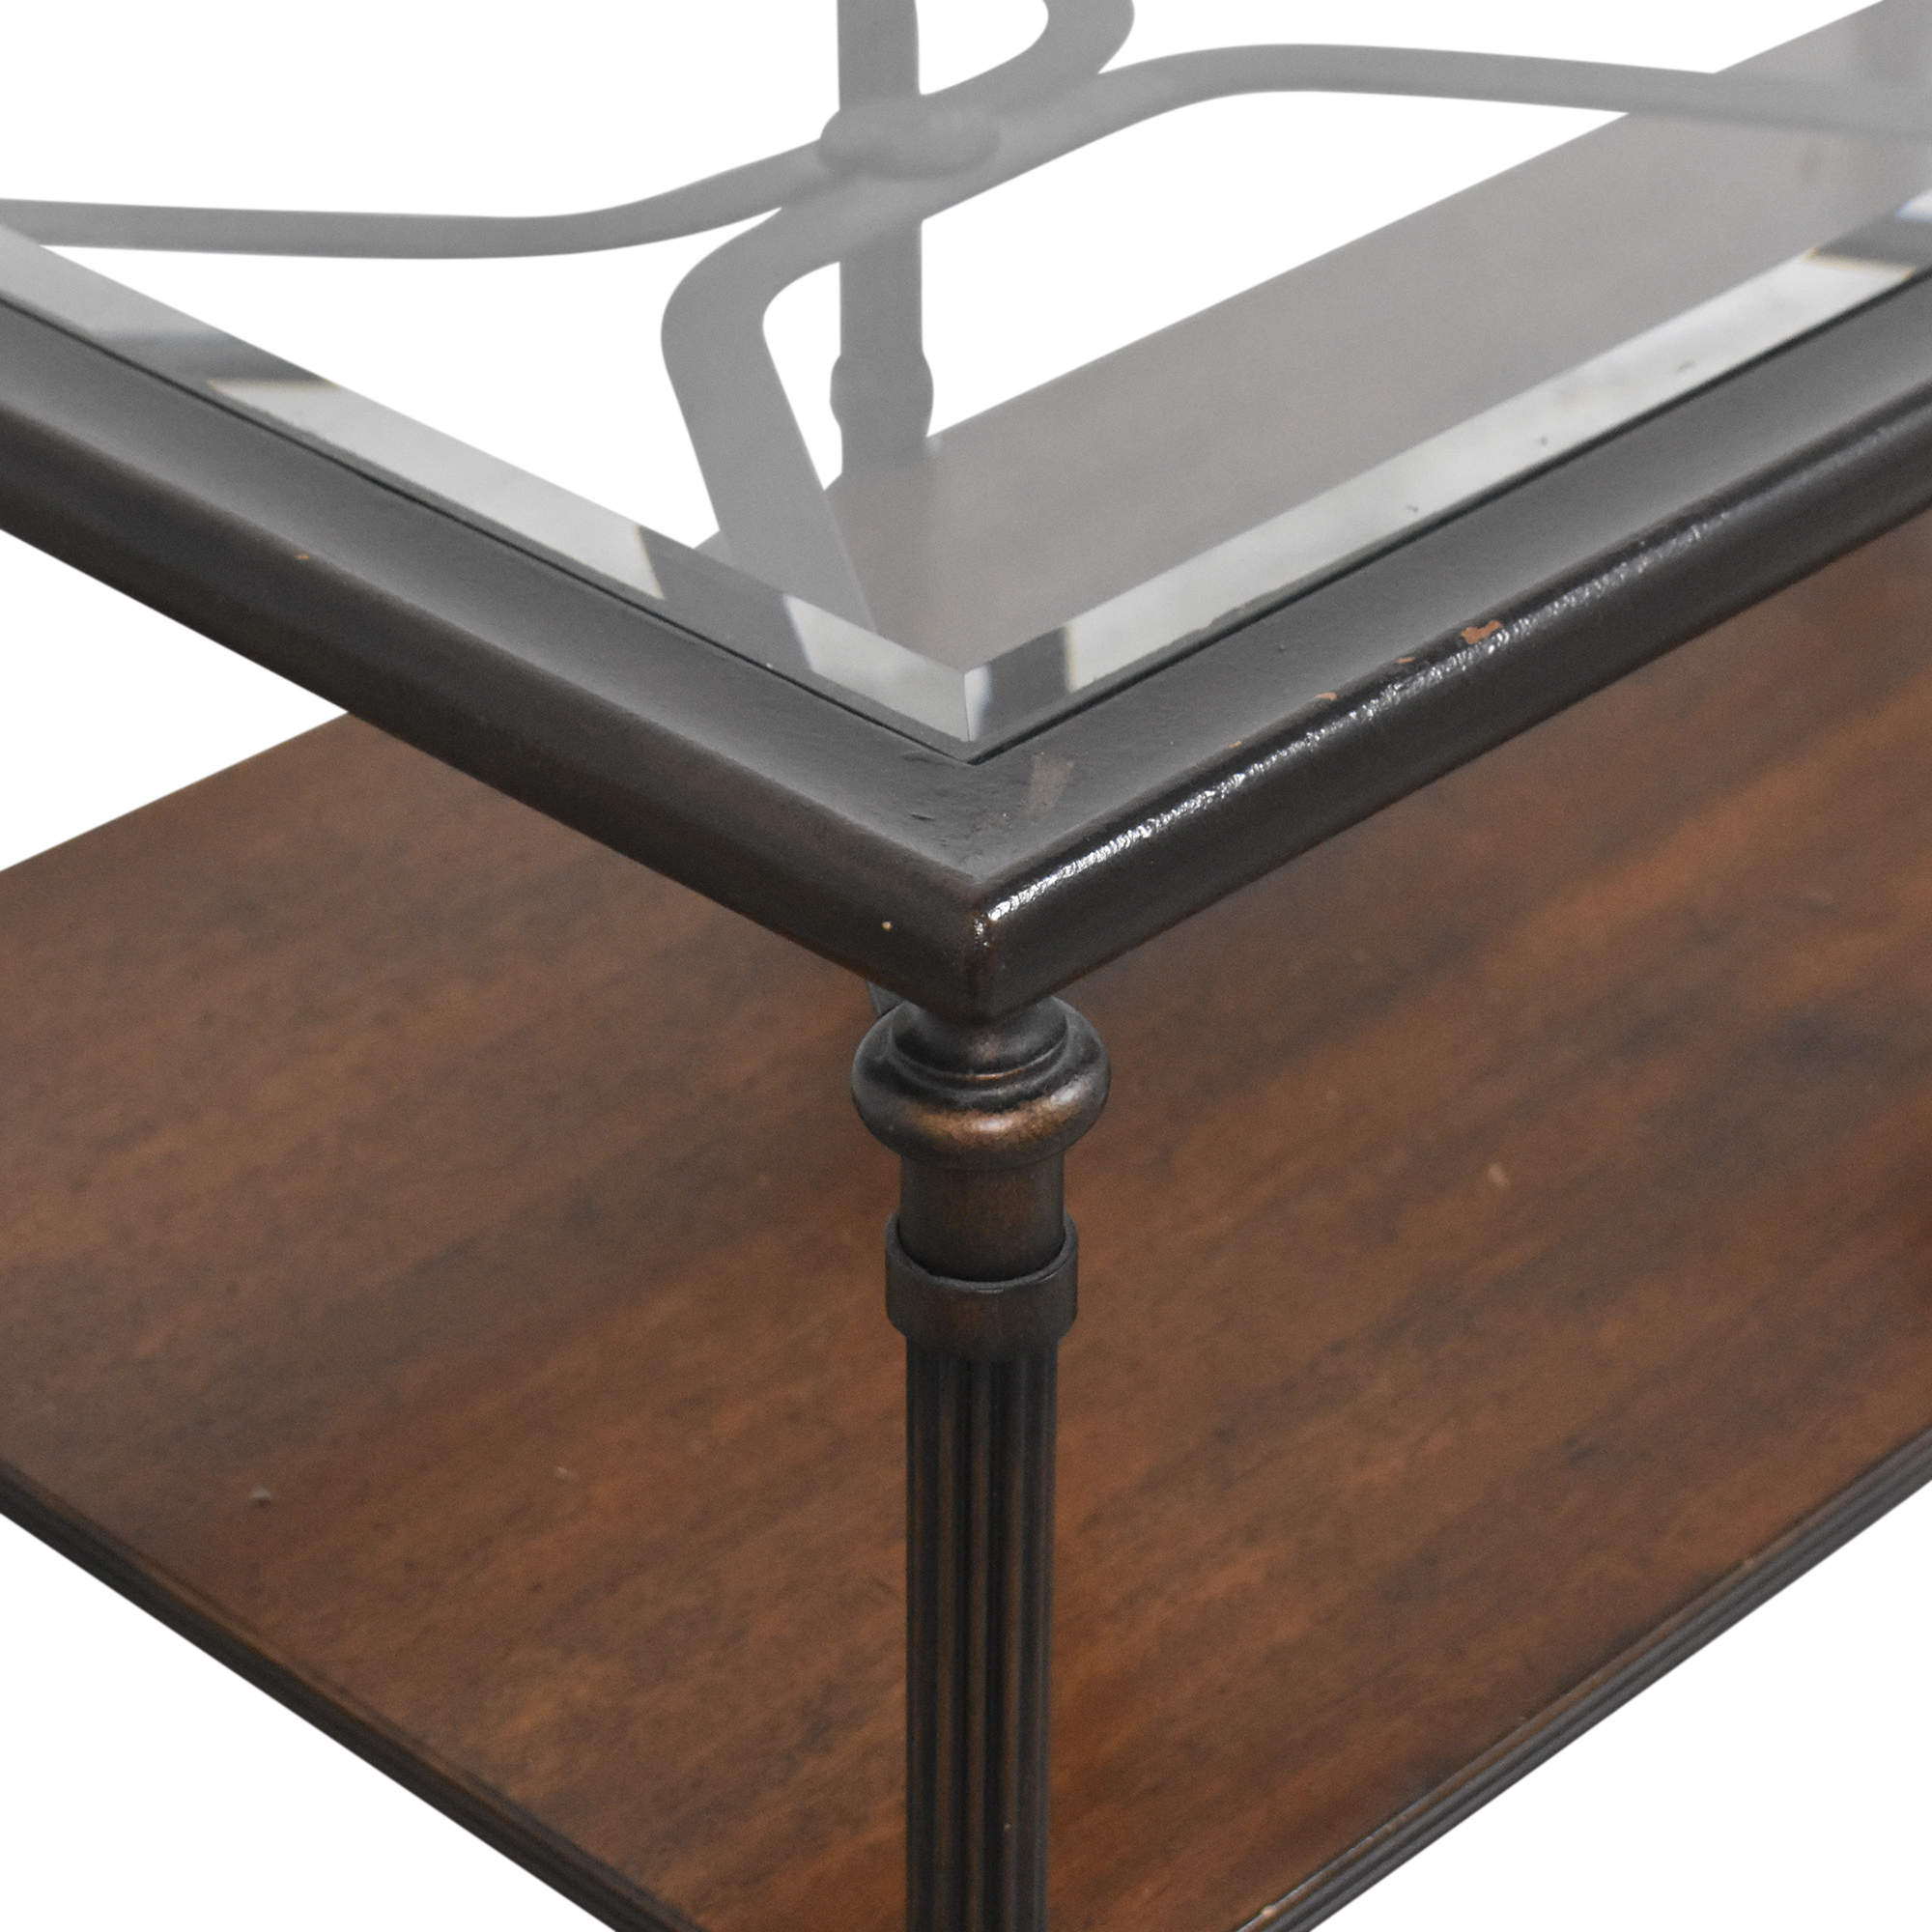 Tiered Coffee Table dimensions